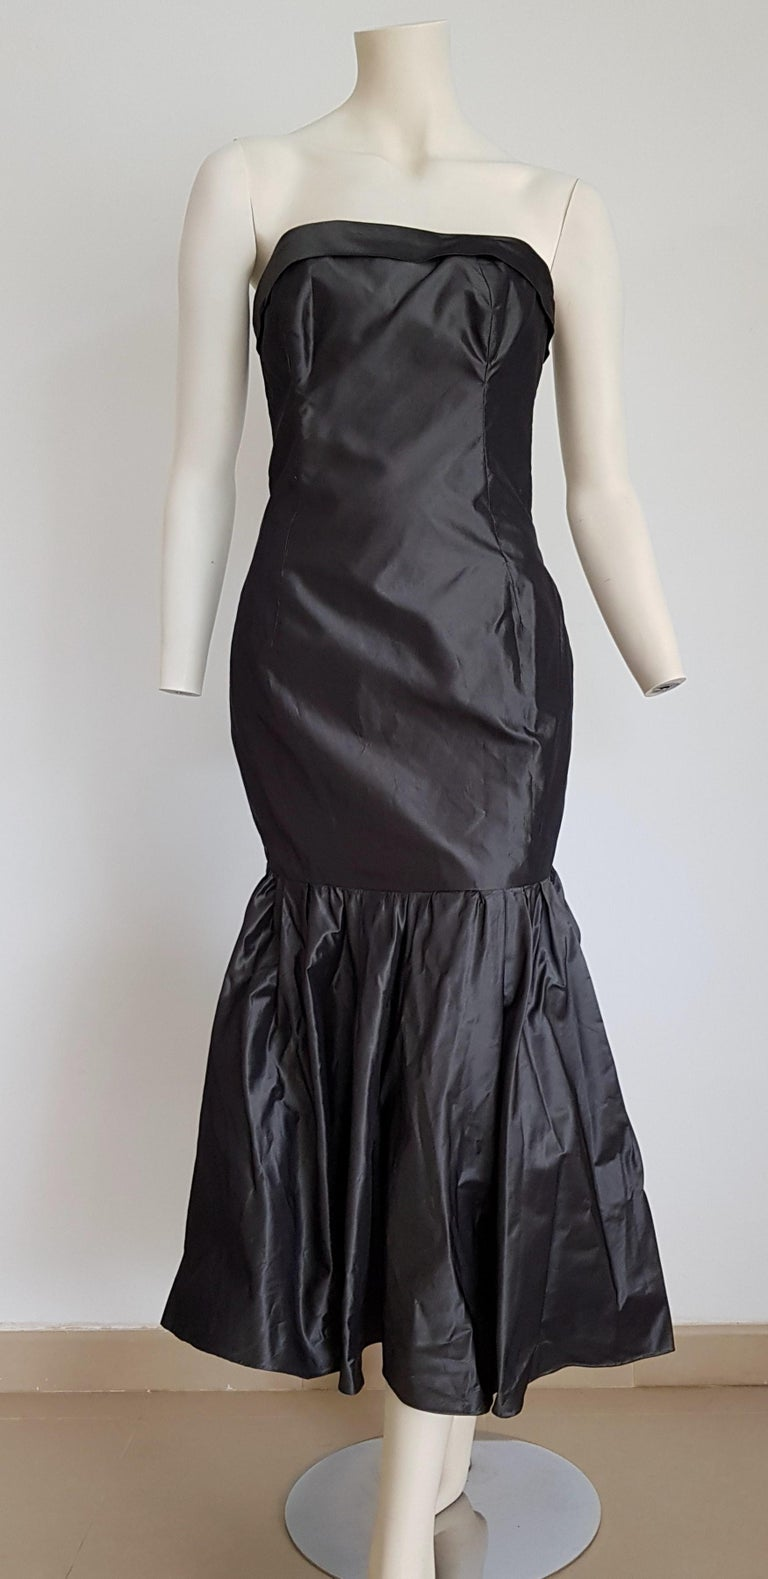 CHANEL Haute Couture strapless dark grey anthracite Silk gown - Unworn.  SIZE: equivalent to about Small / Medium, please review approx measurements as follows in cm: lenght 105, chest underarm to underarm 49 , bust circumference 88, waist